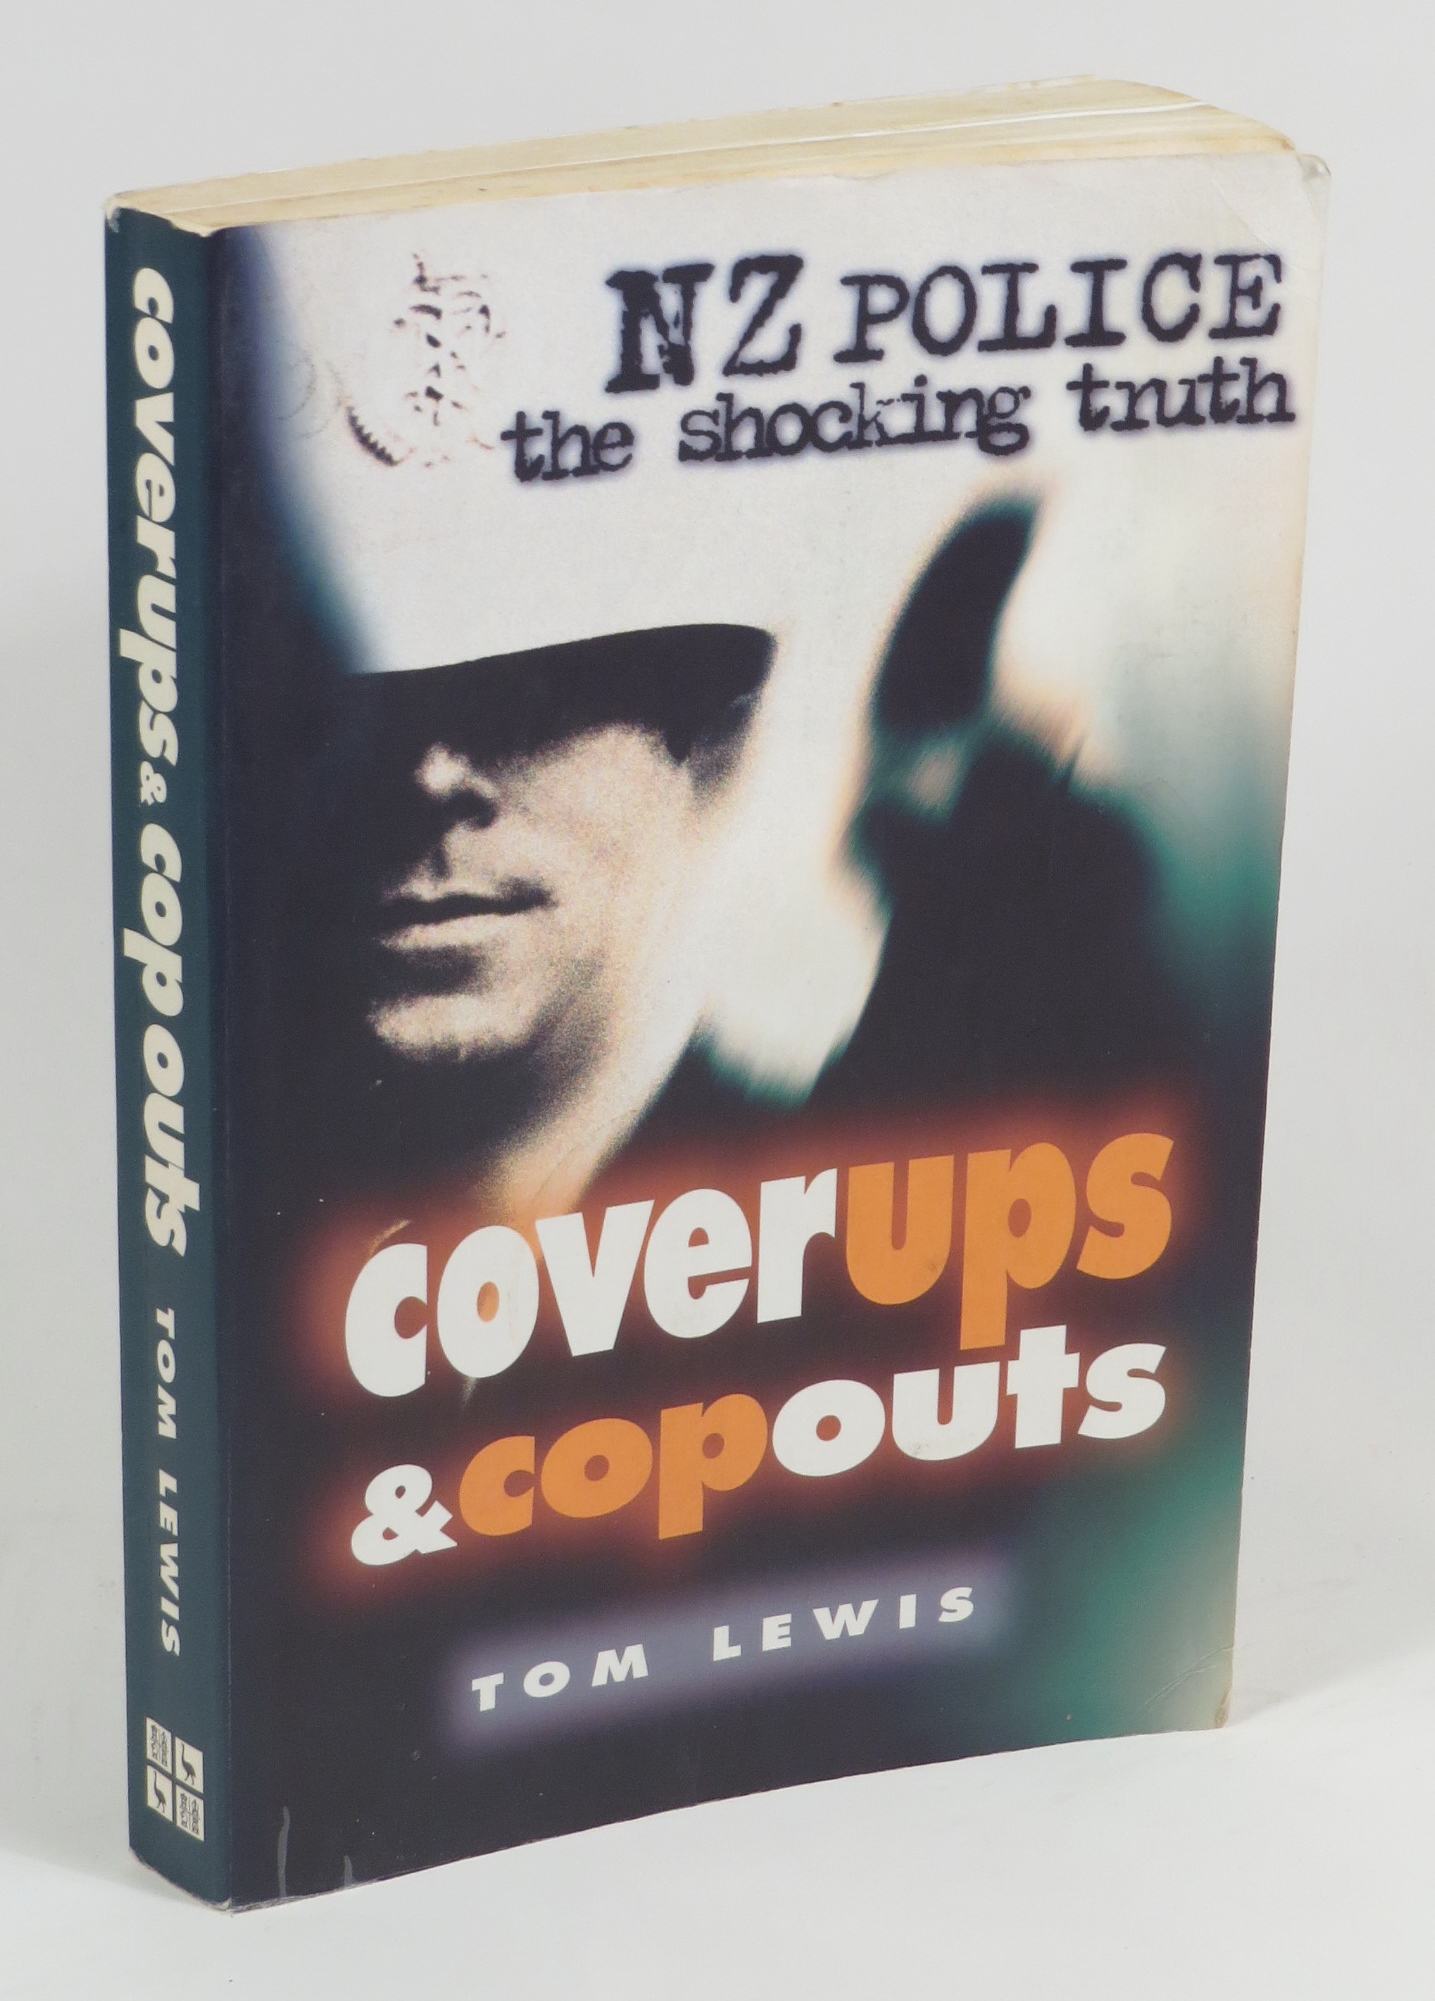 Image for Coverups & Copouts